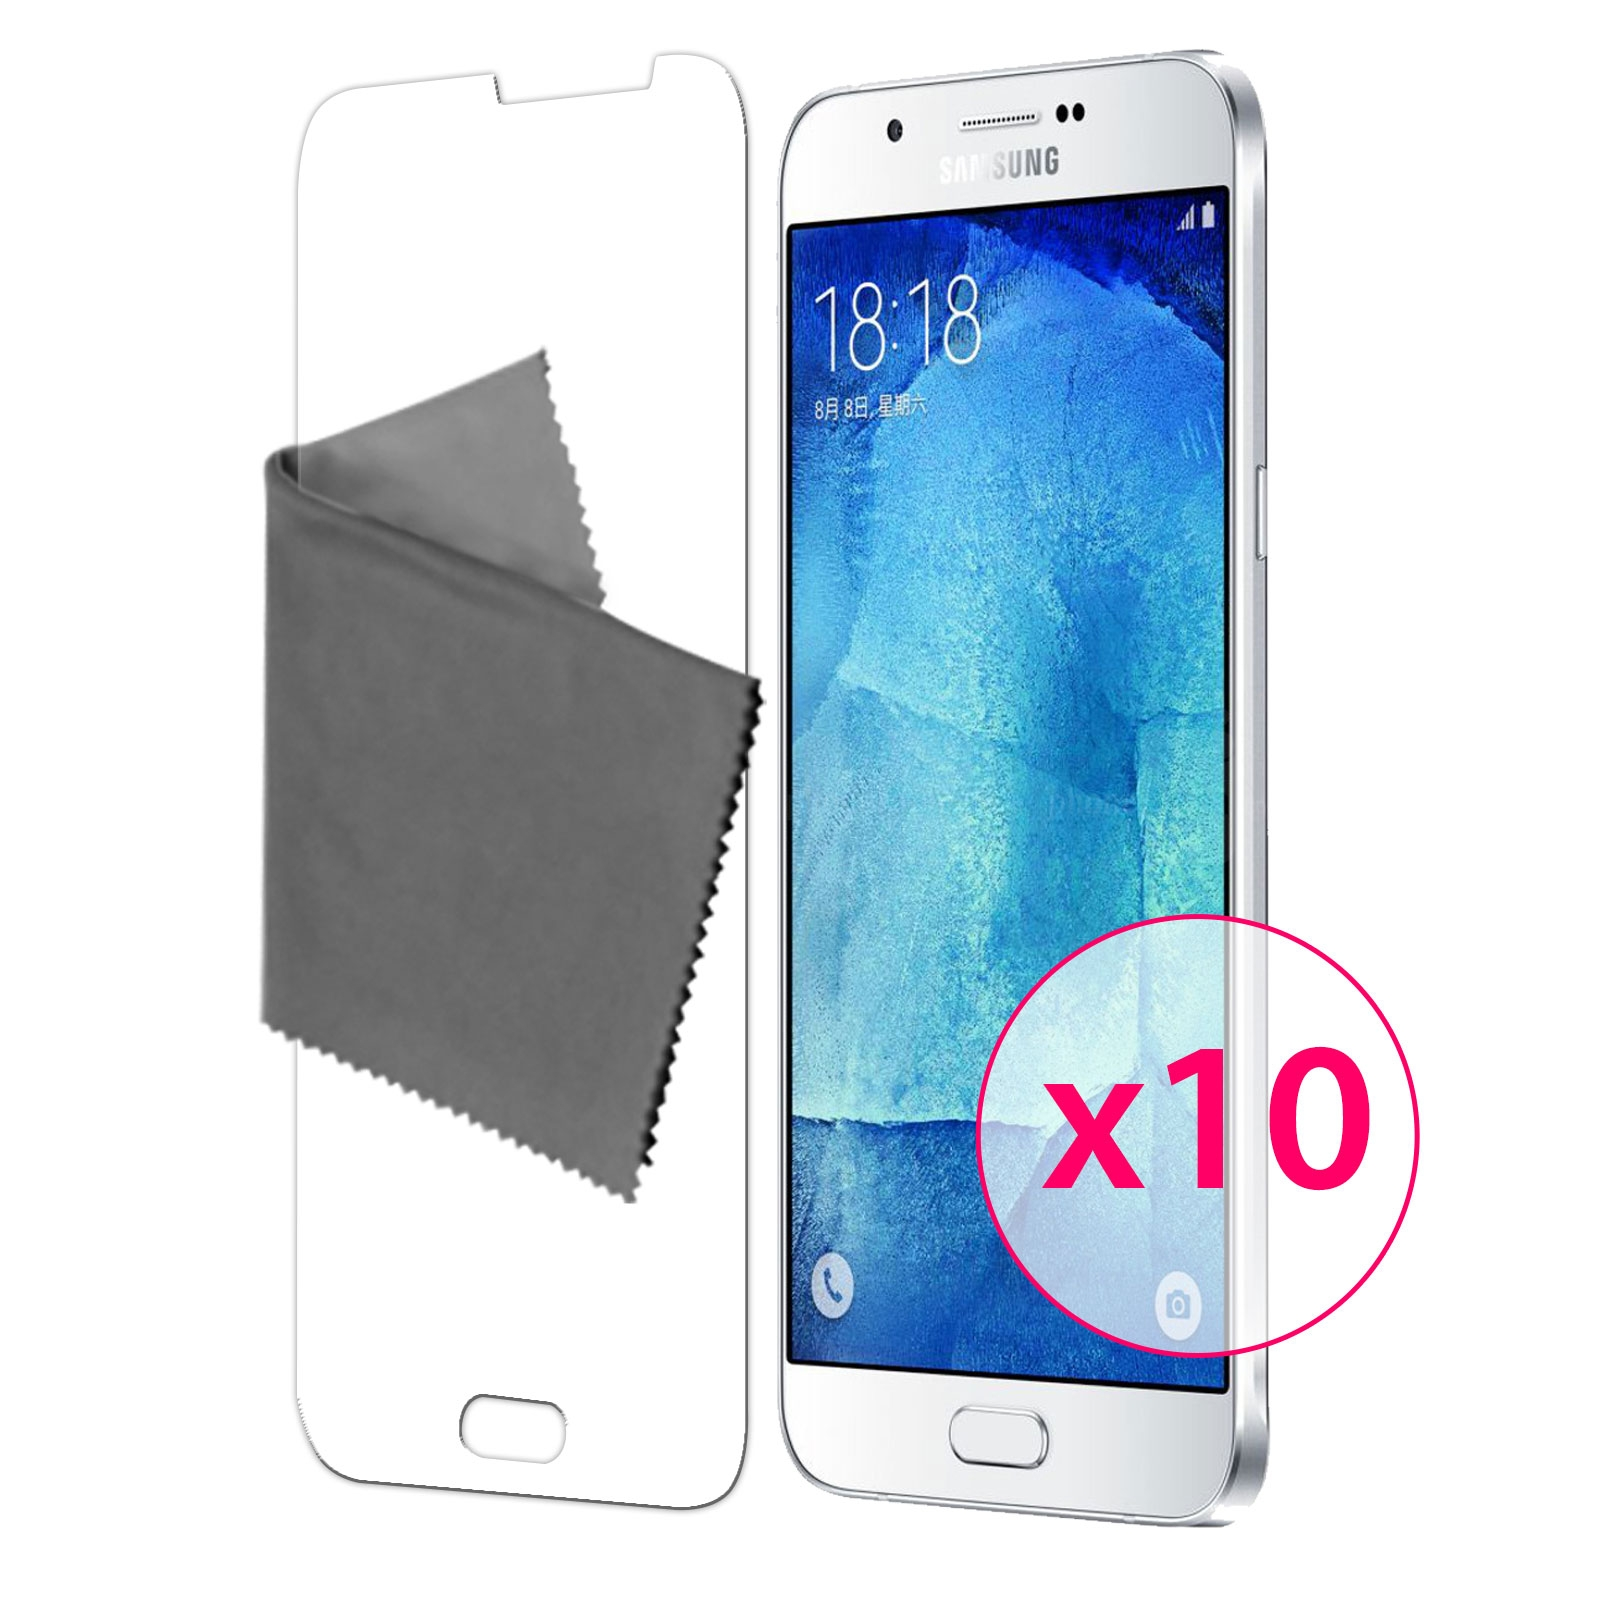 10 films de protection galaxy a8 clubcase 3h ultra clear hd. Black Bedroom Furniture Sets. Home Design Ideas